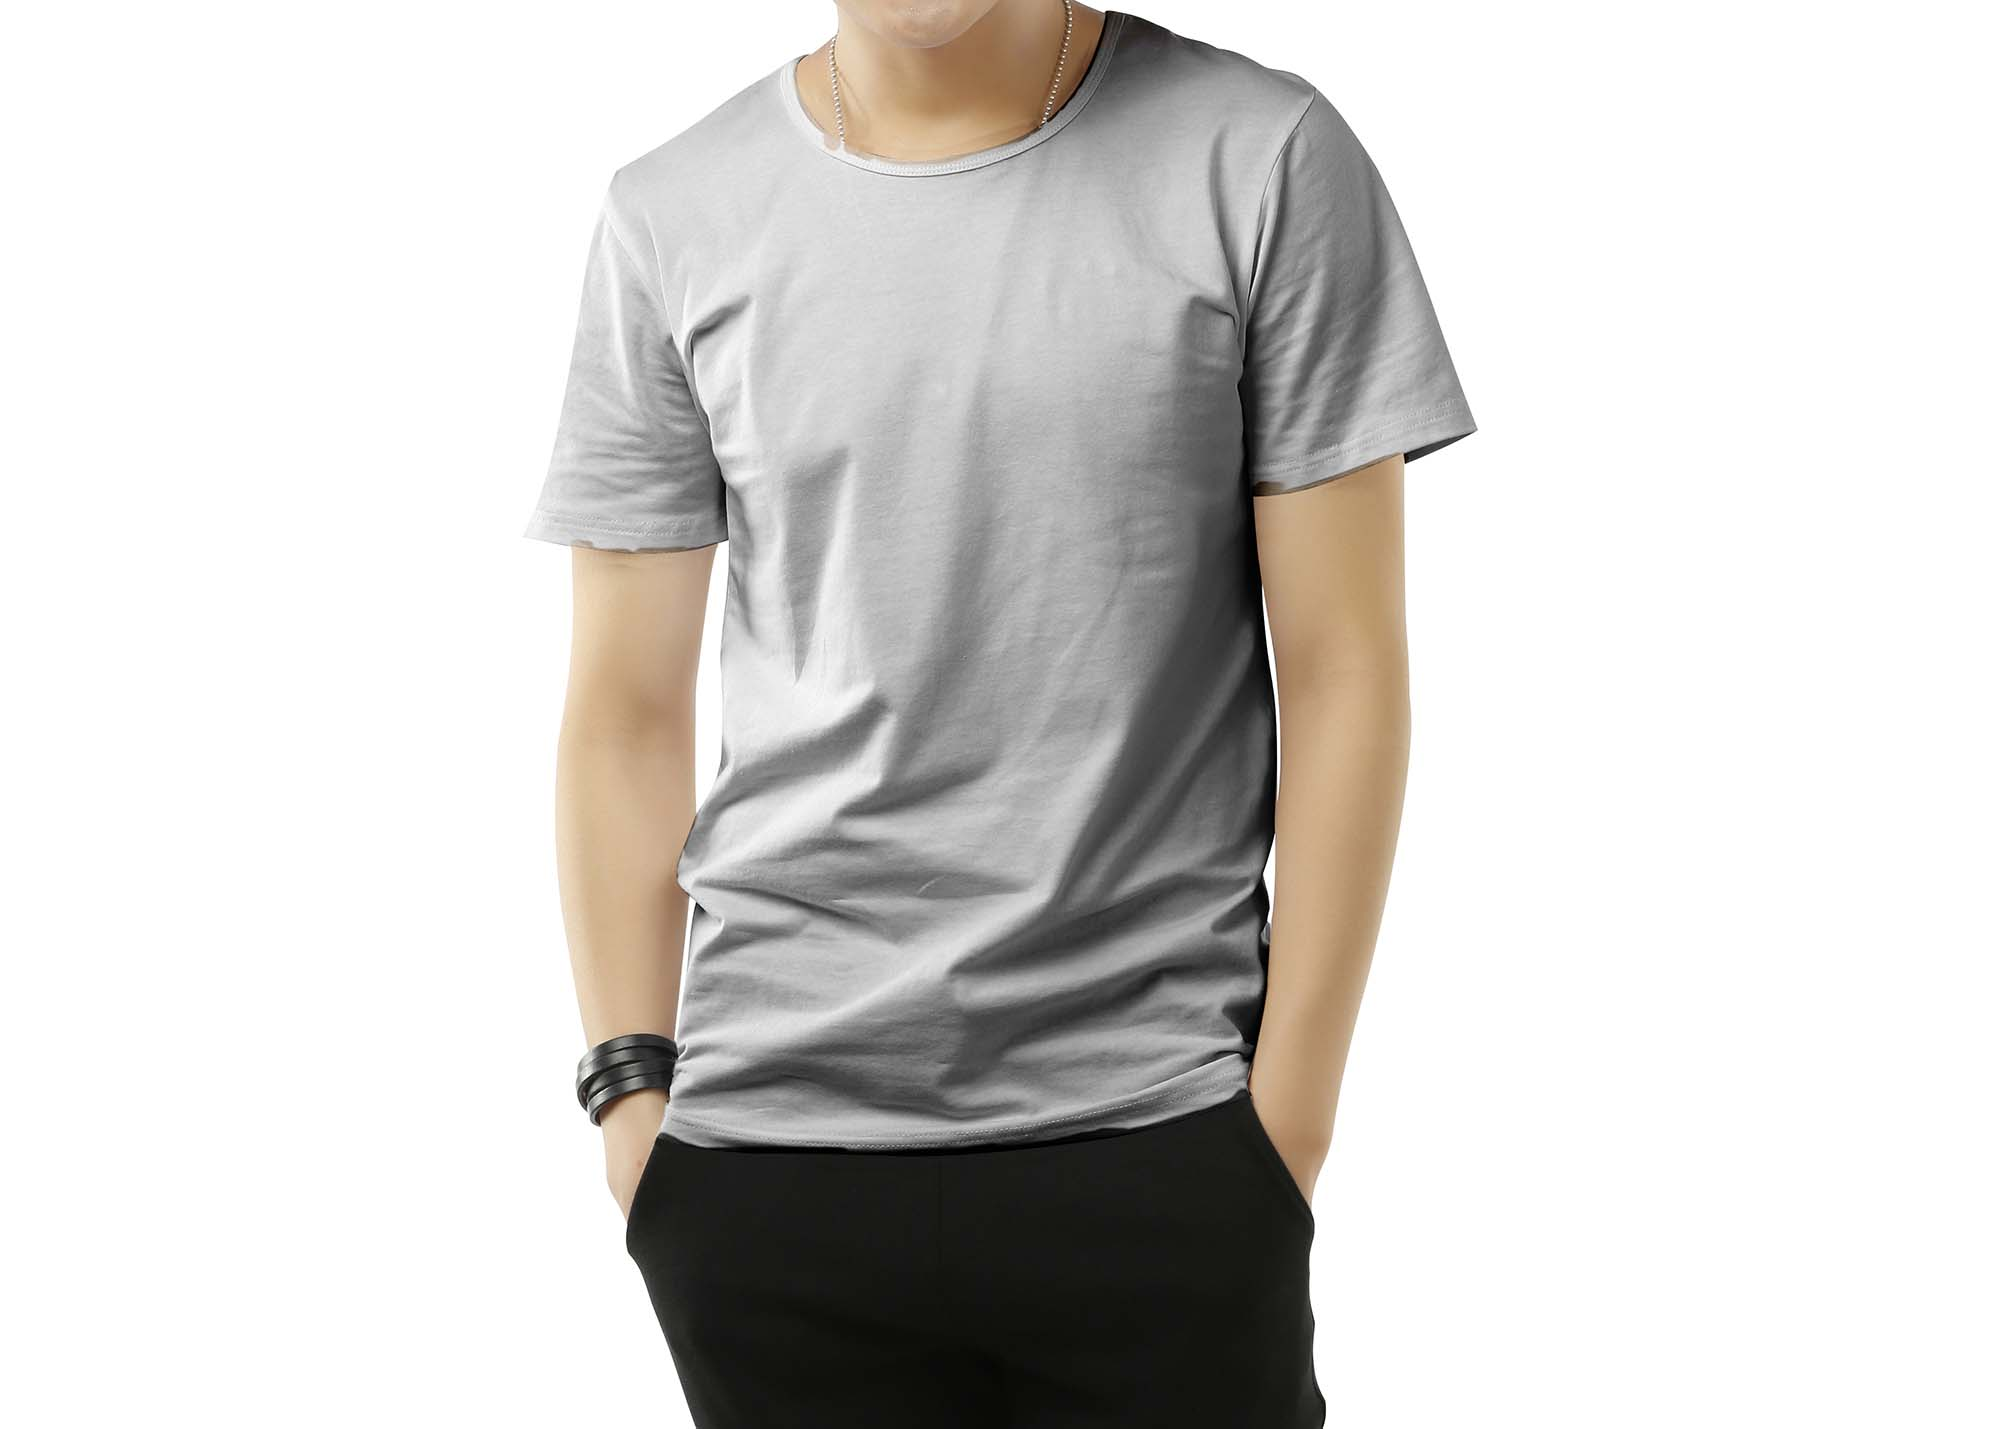 Round Neck Men T-Shirt Mockup 3